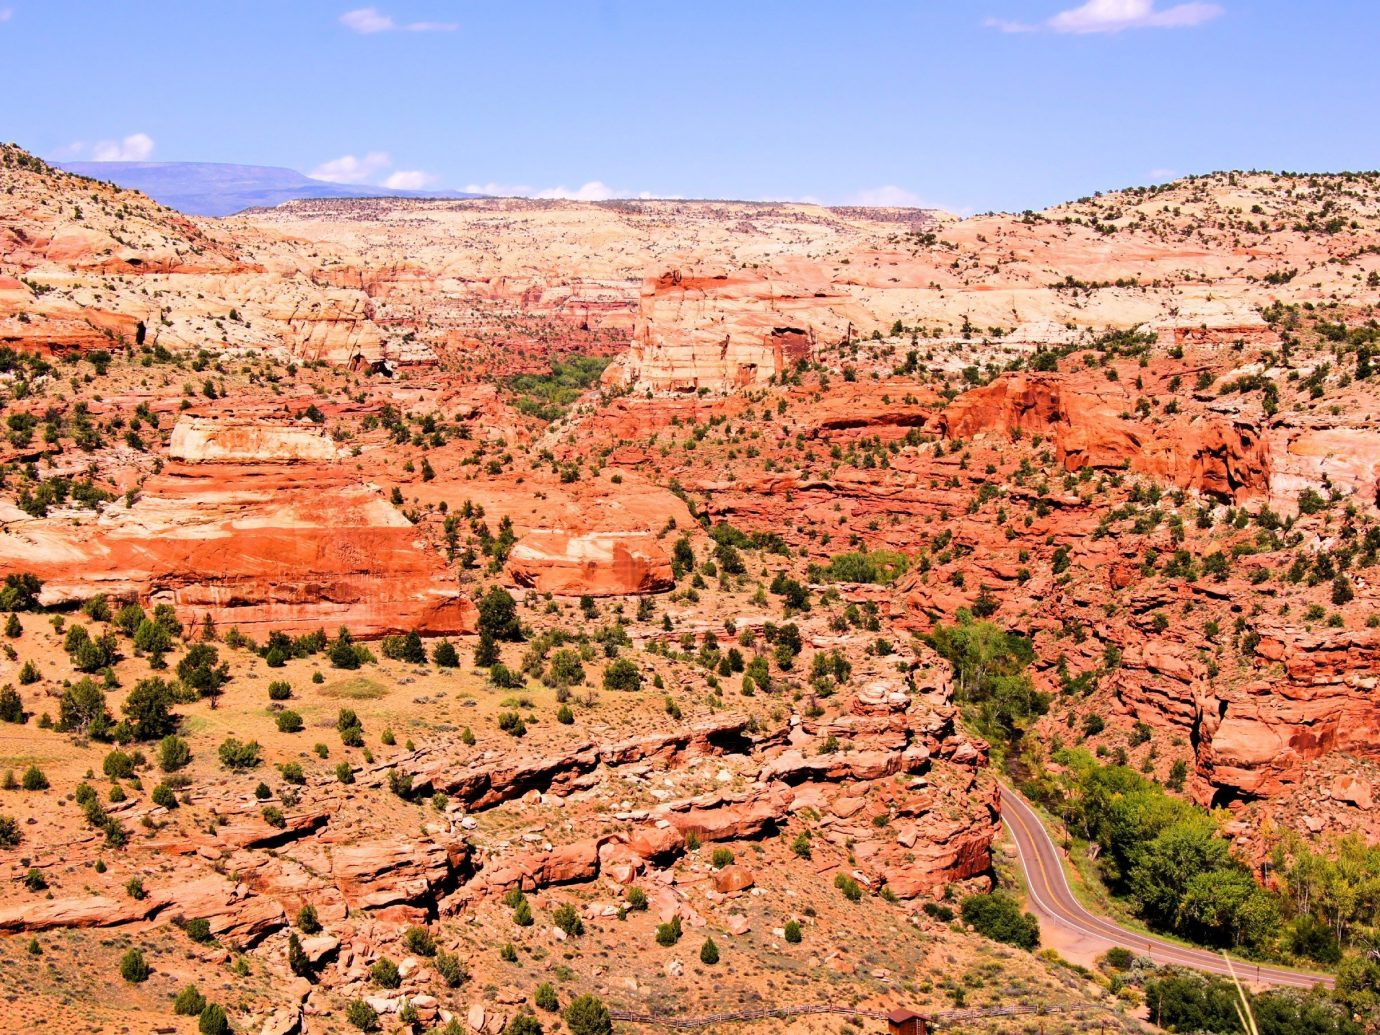 Road Trips Trip Ideas valley canyon sky outdoor mountain ground geographical feature landform Nature wilderness natural environment wadi Desert rock rocky landscape badlands geology butte soil plateau formation park national park hill hillside dirt